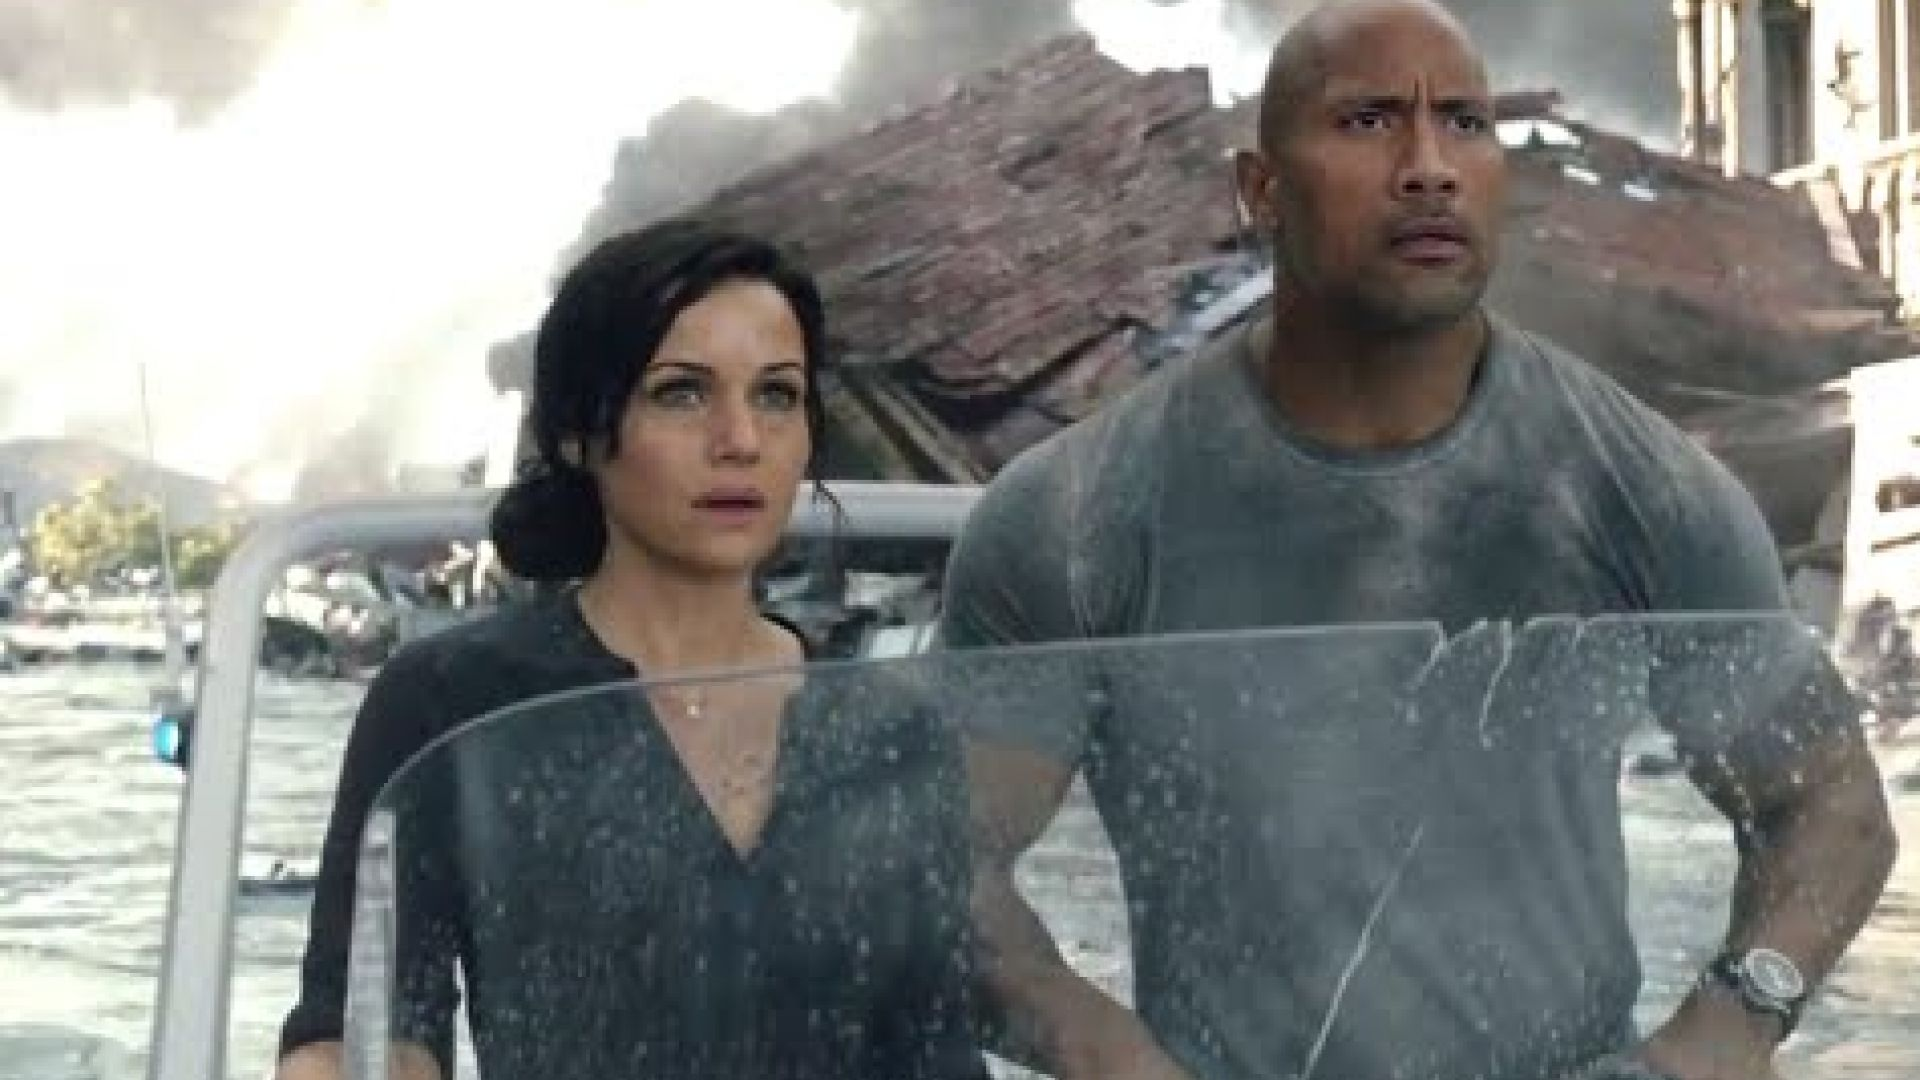 You Need to Get Out in Final Trailer for 'San Andreas'